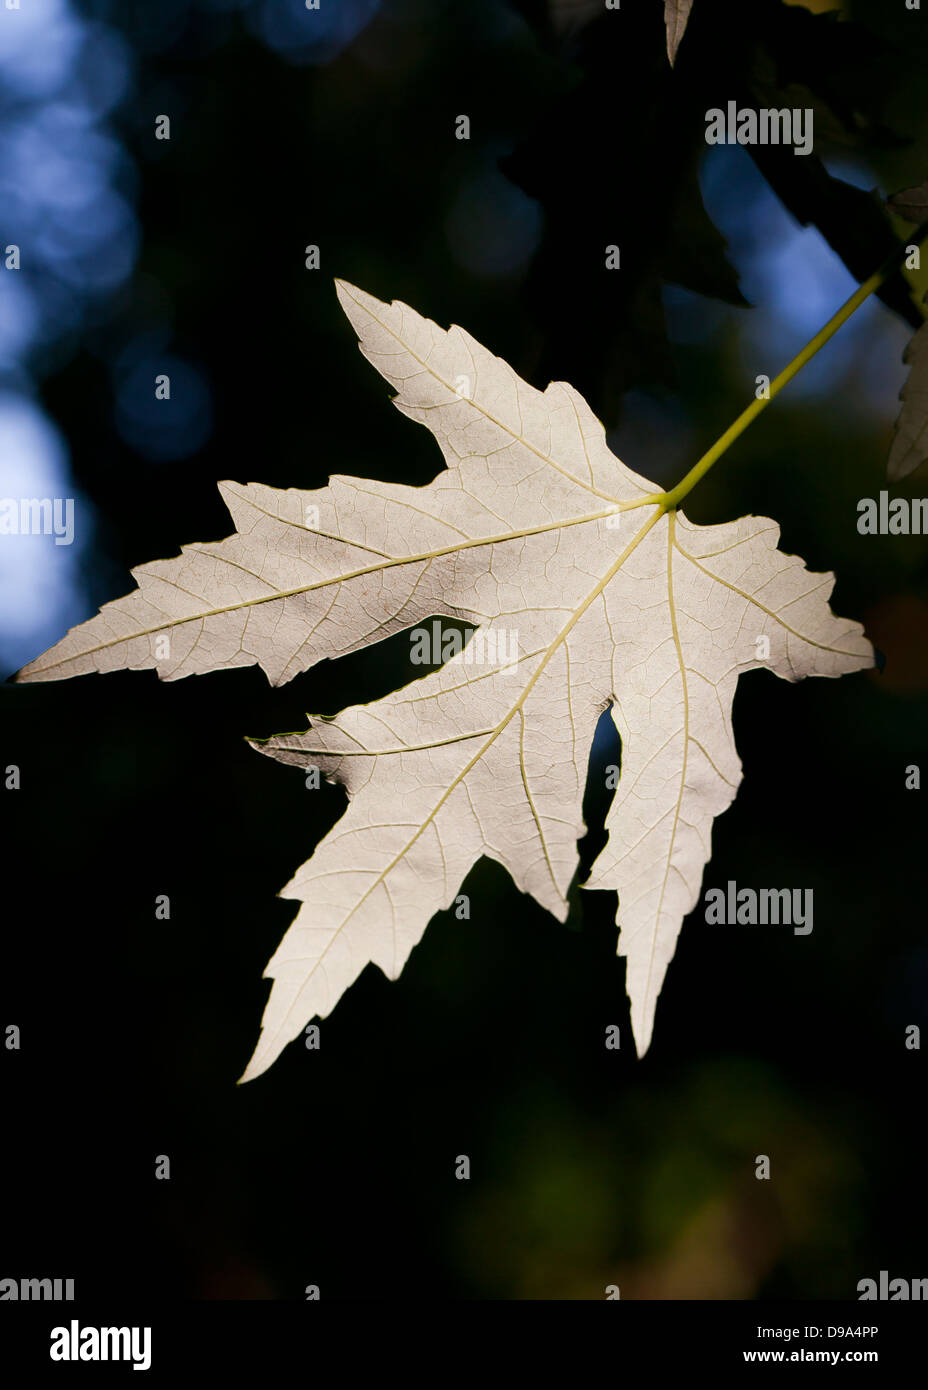 Underside of Maple leaf - Stock Image